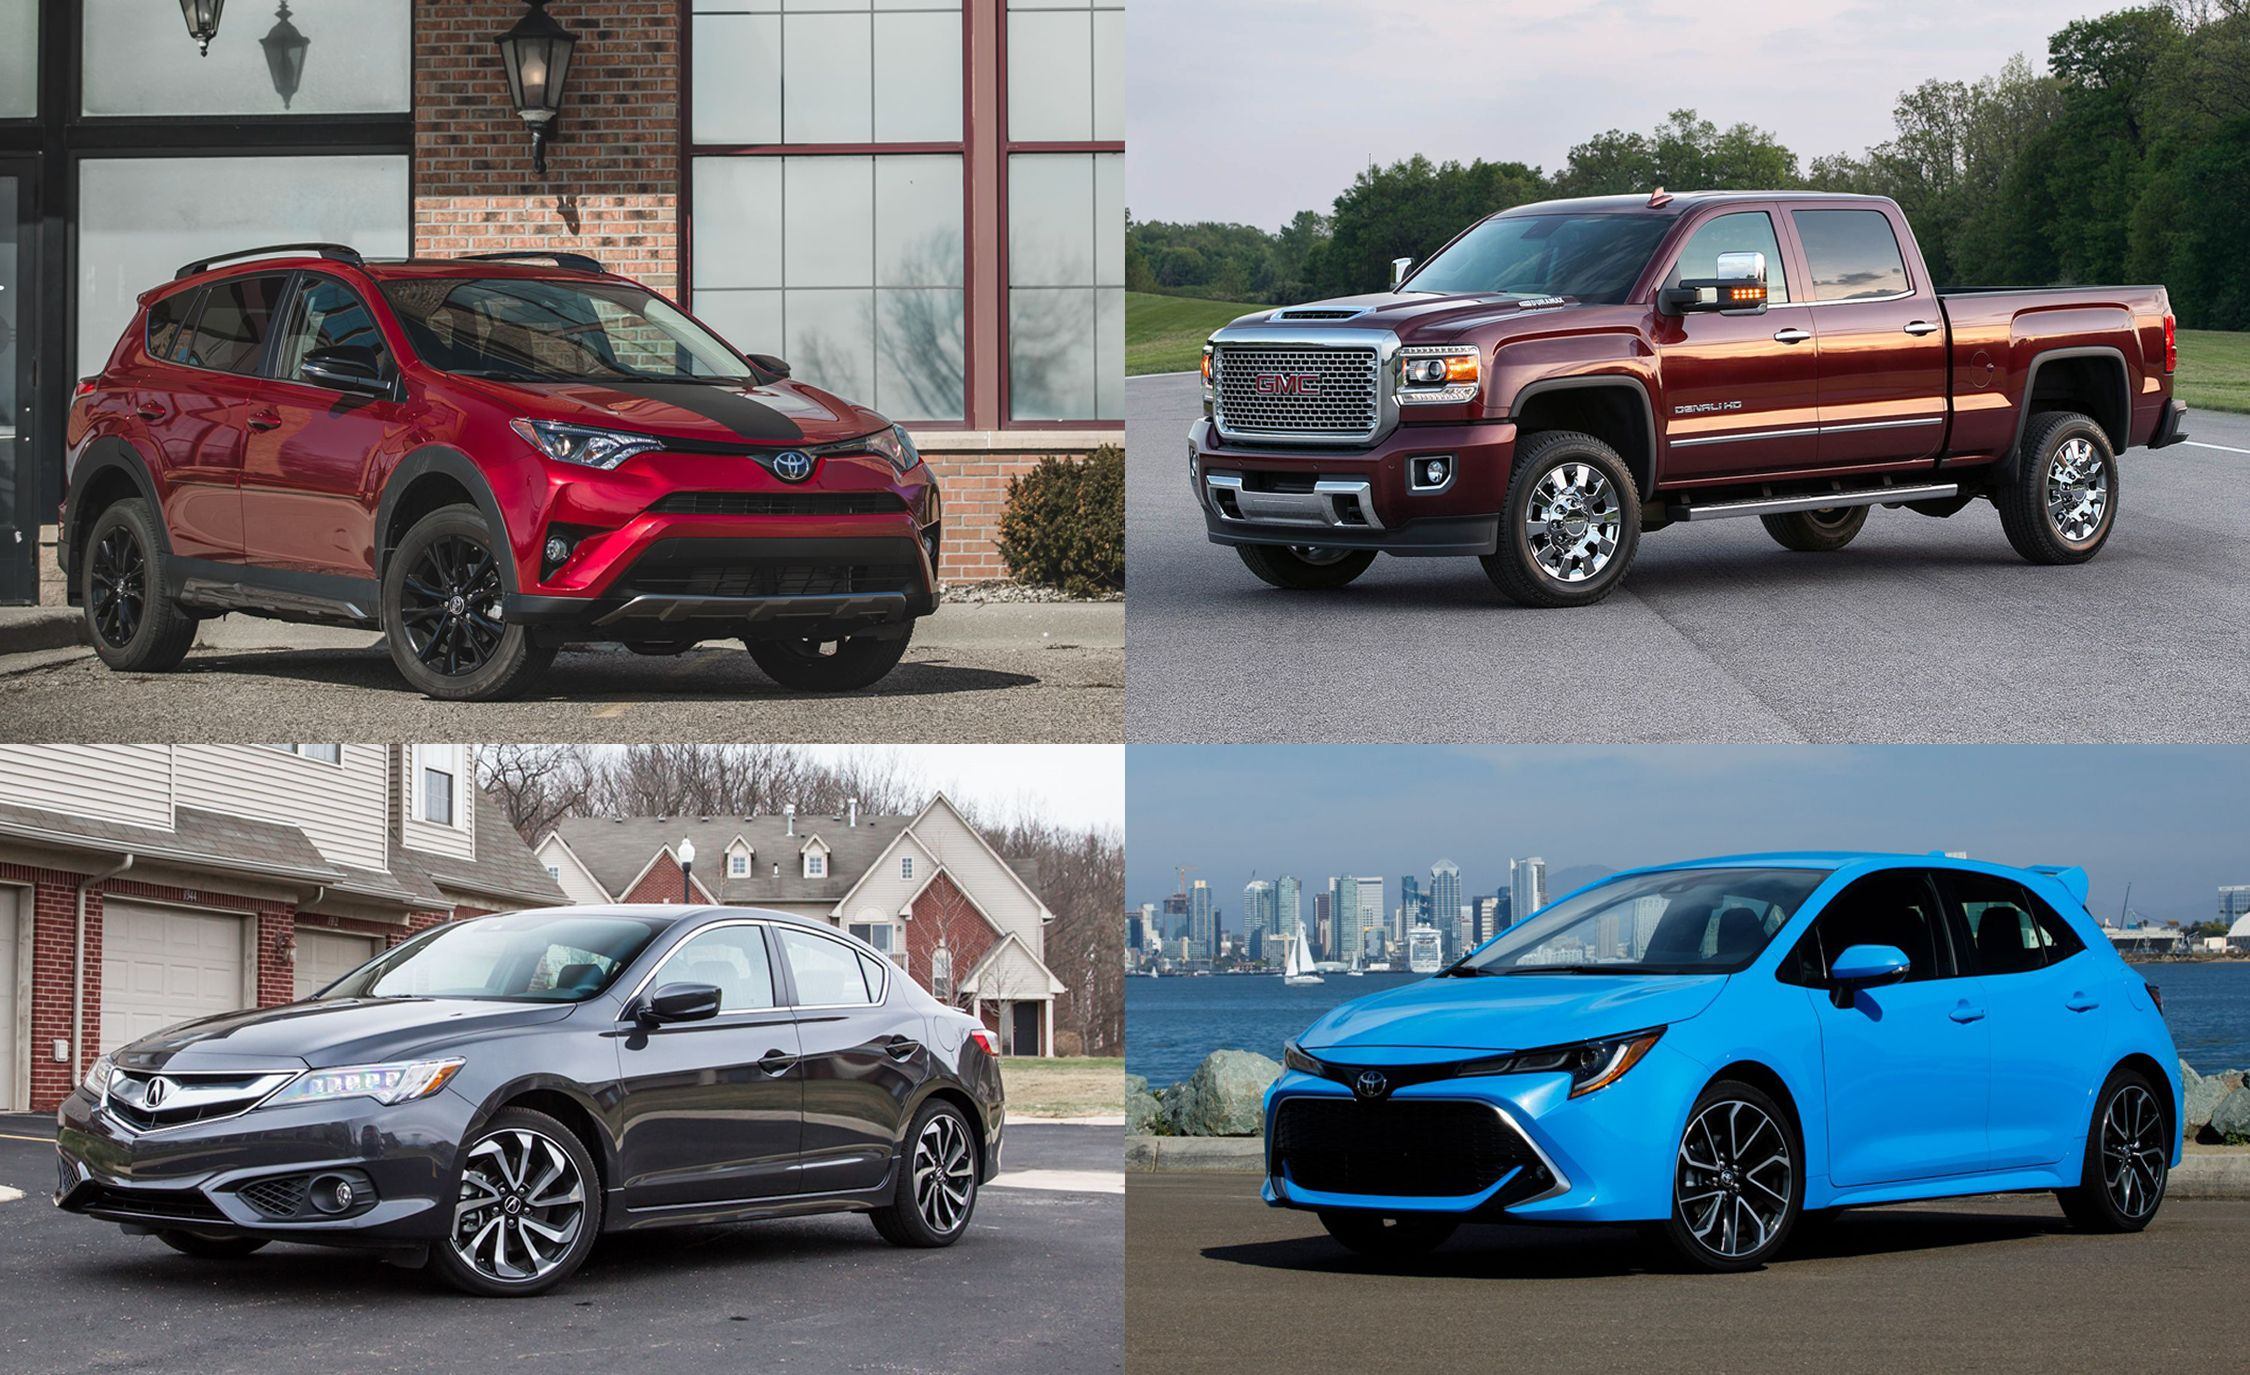 199 Lease Deals On Cars Trucks And Suvs For August 2018